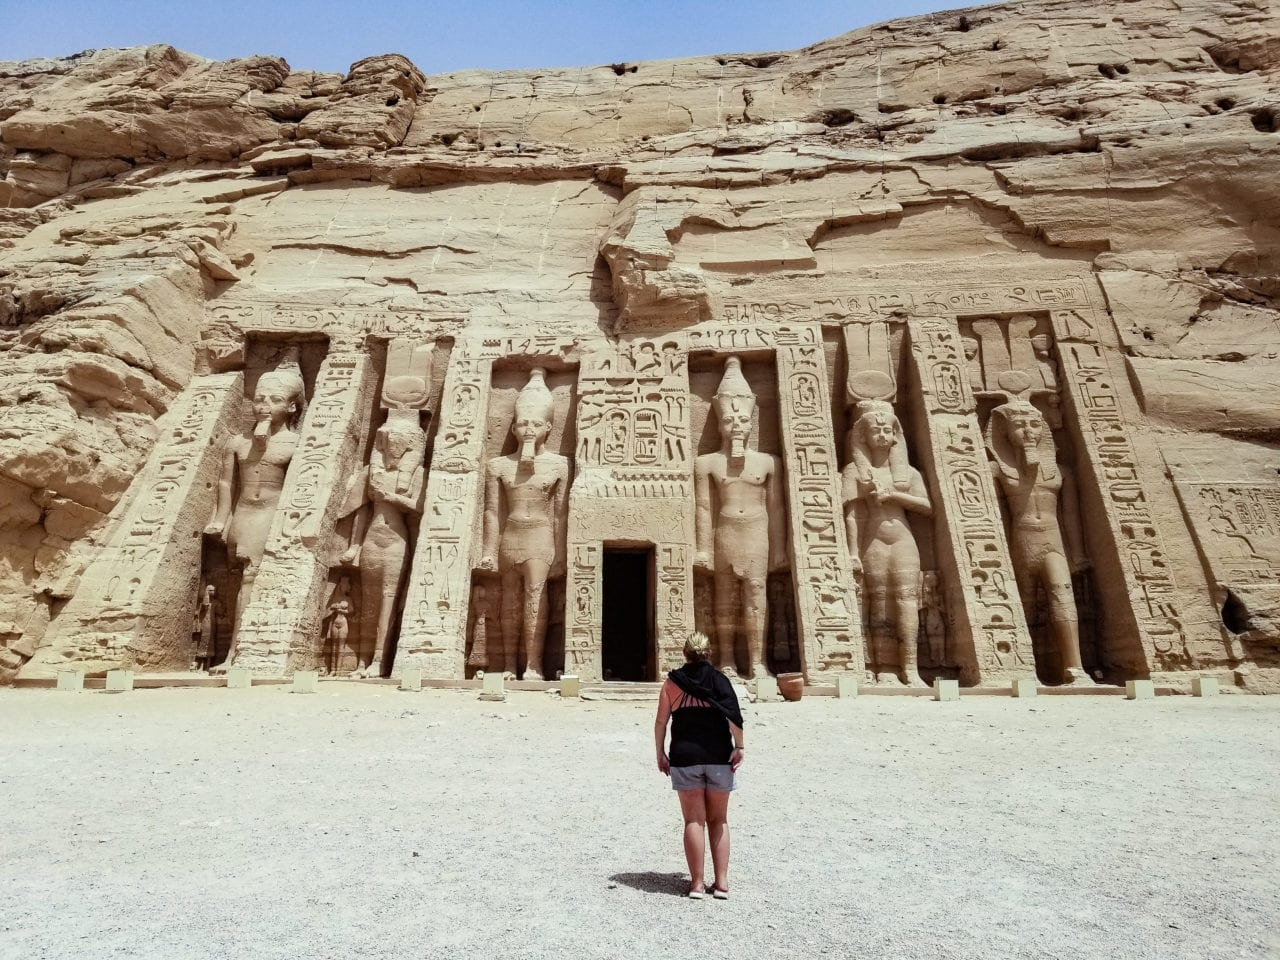 The author standing in front of Abu Simbel